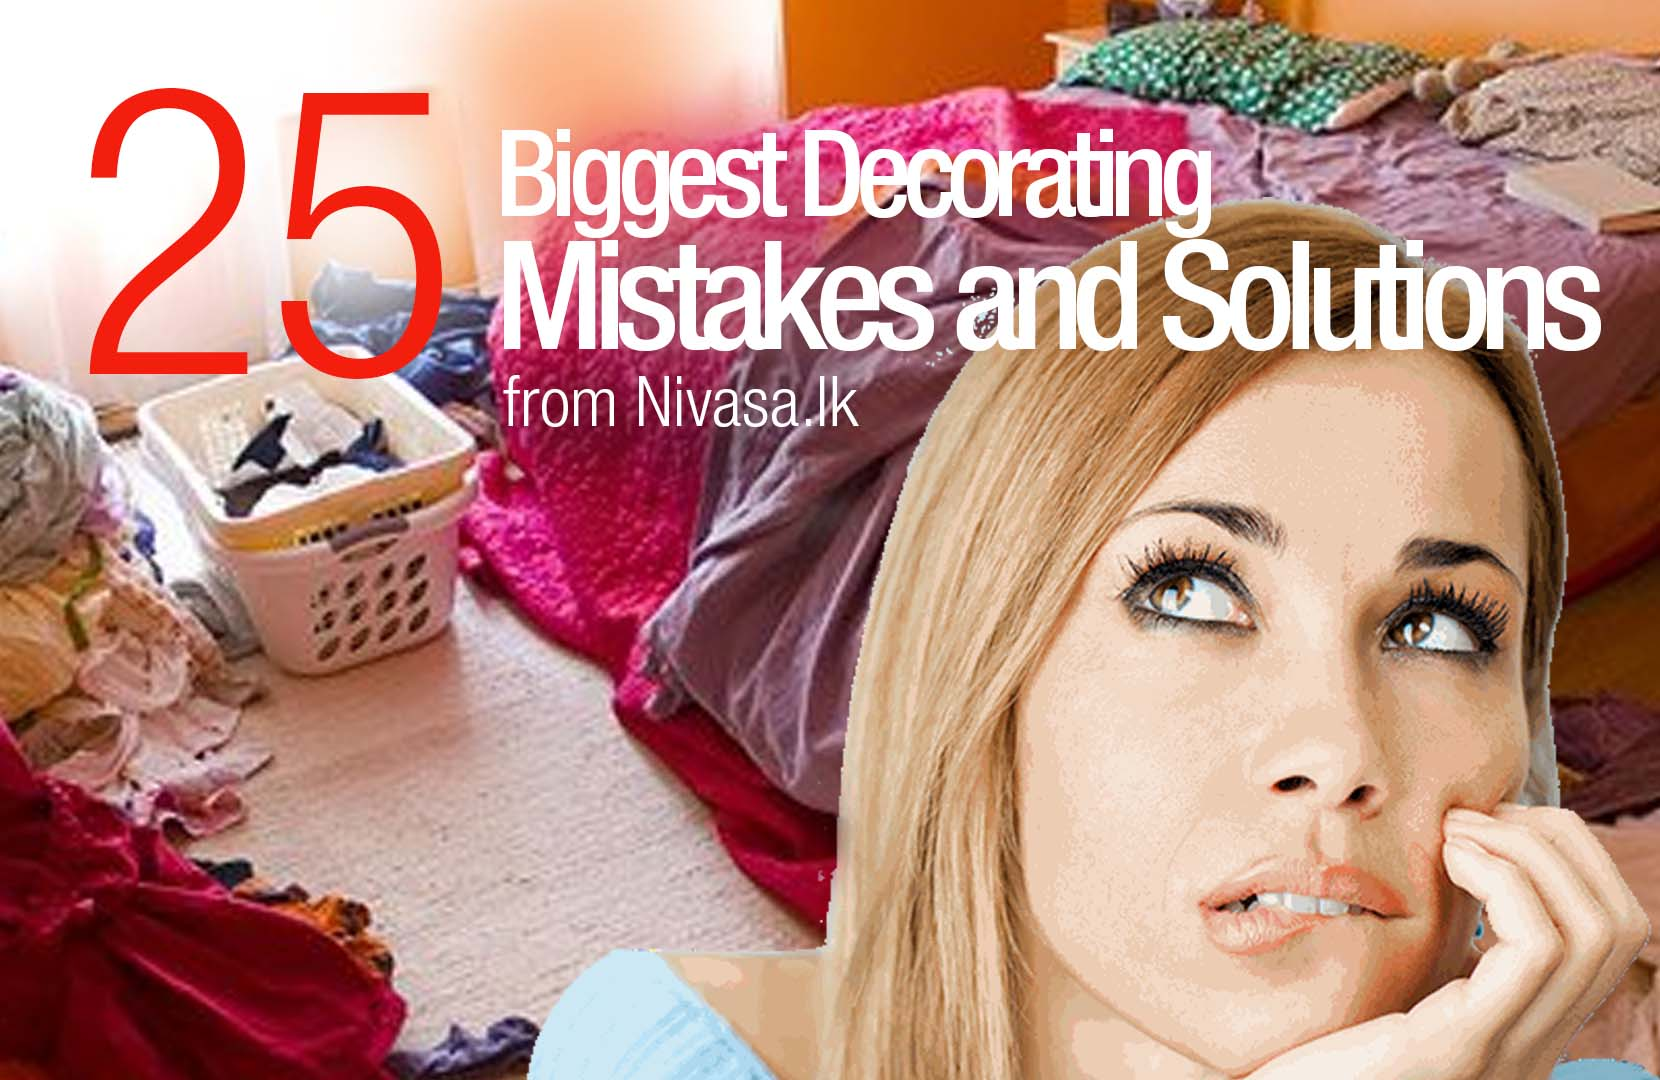 25 Biggest Decorating Mistakes and Solutions